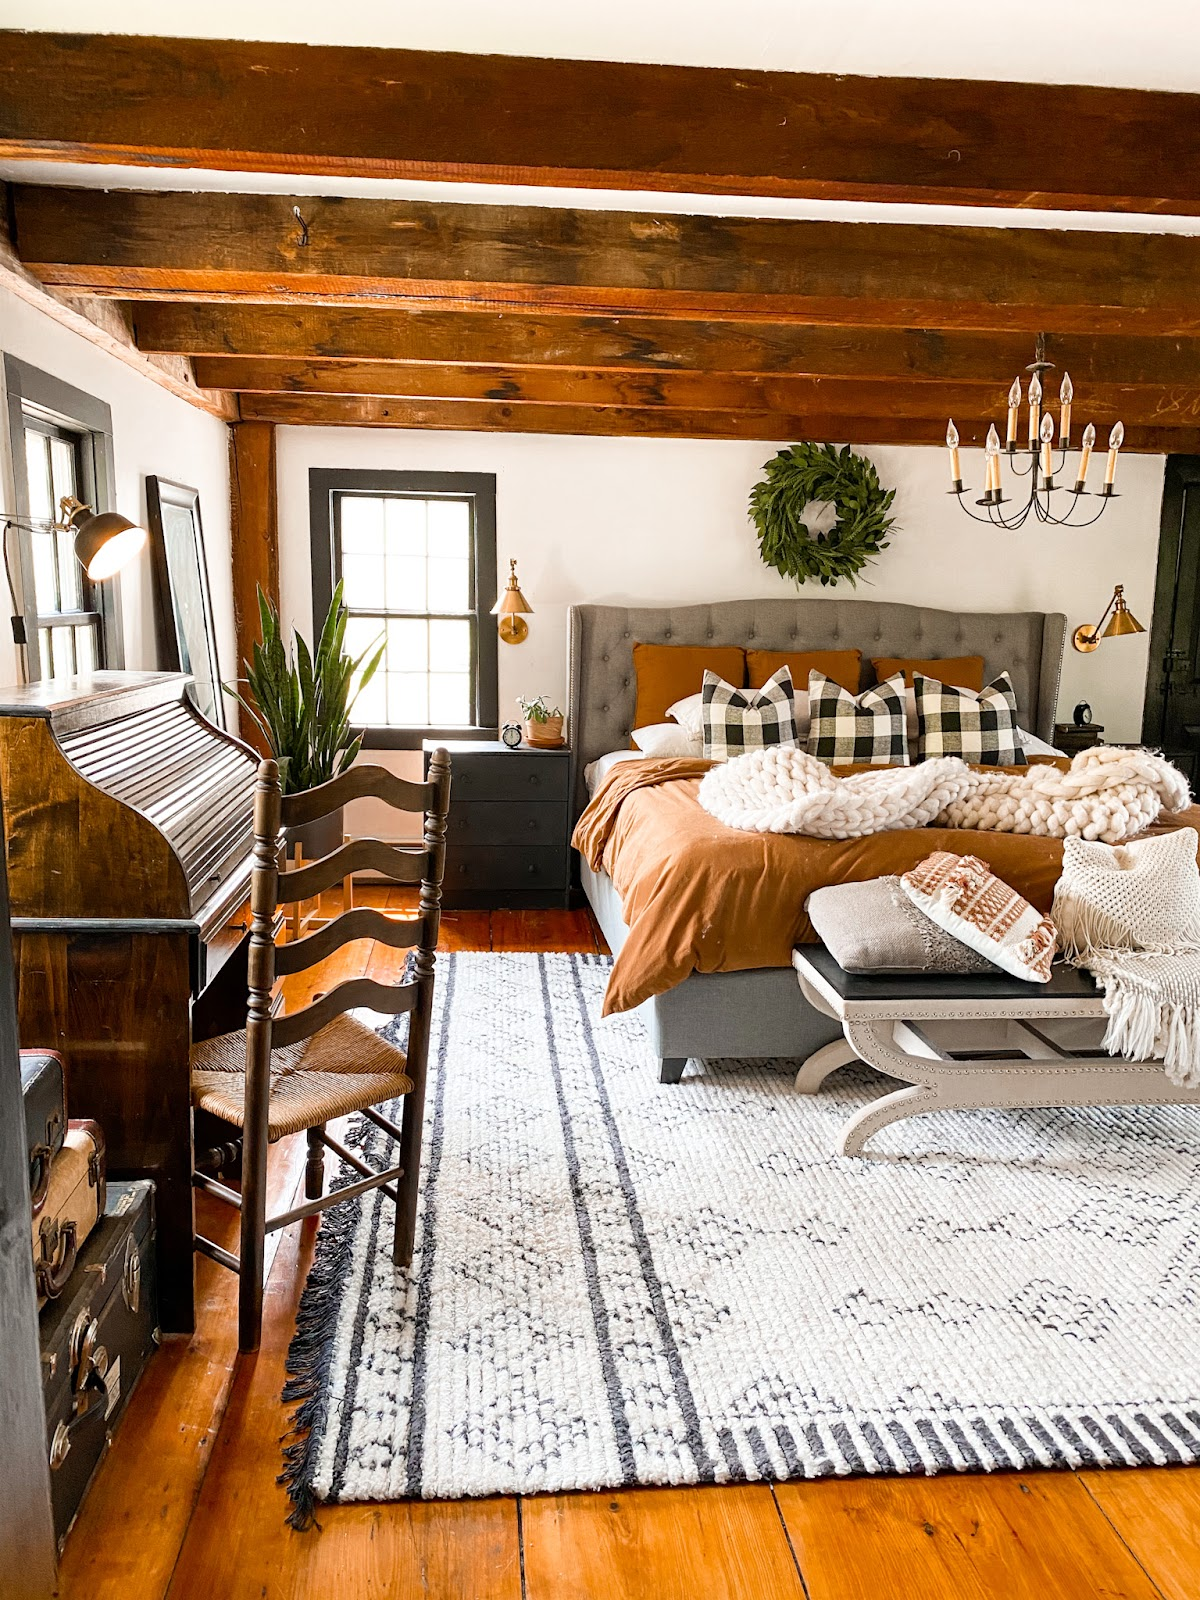 boho bedroom with rust bedding, an exposed beamed ceiling, and green plants